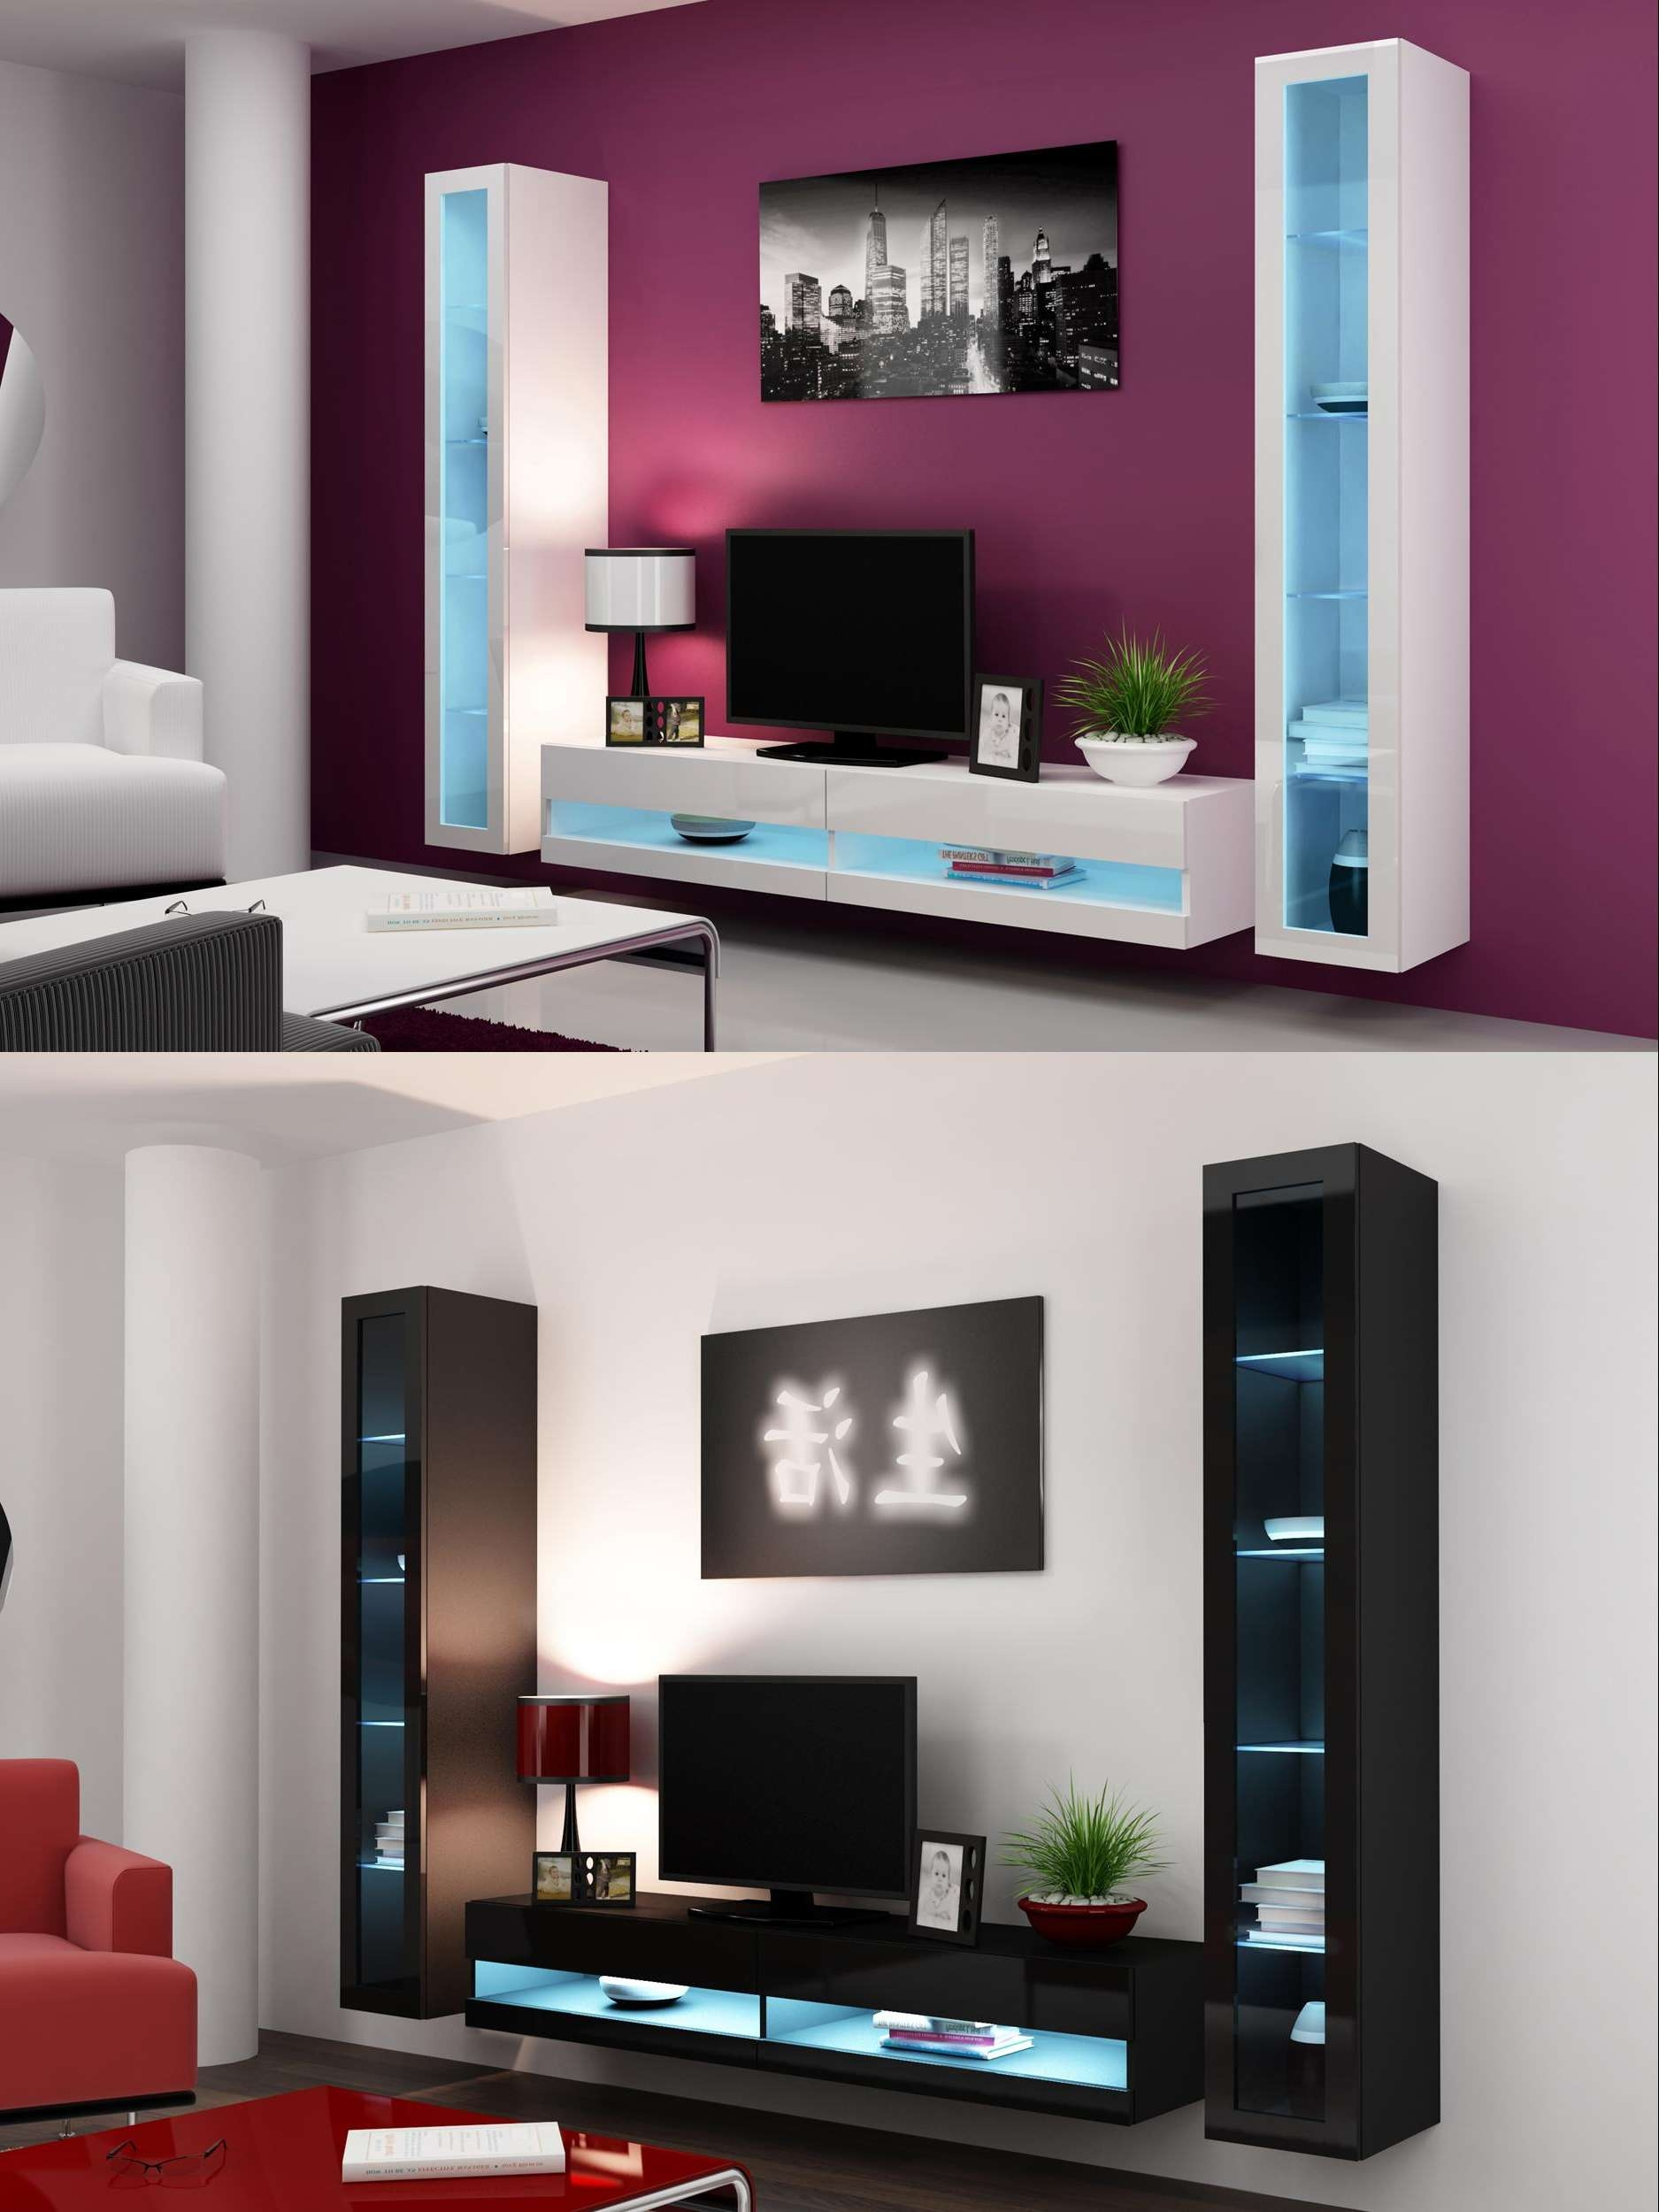 High Gloss Living Room Set With Led Lights, Tv Stand, Wall Mounted With Regard To Wall Display Units And Tv Cabinets (View 11 of 20)